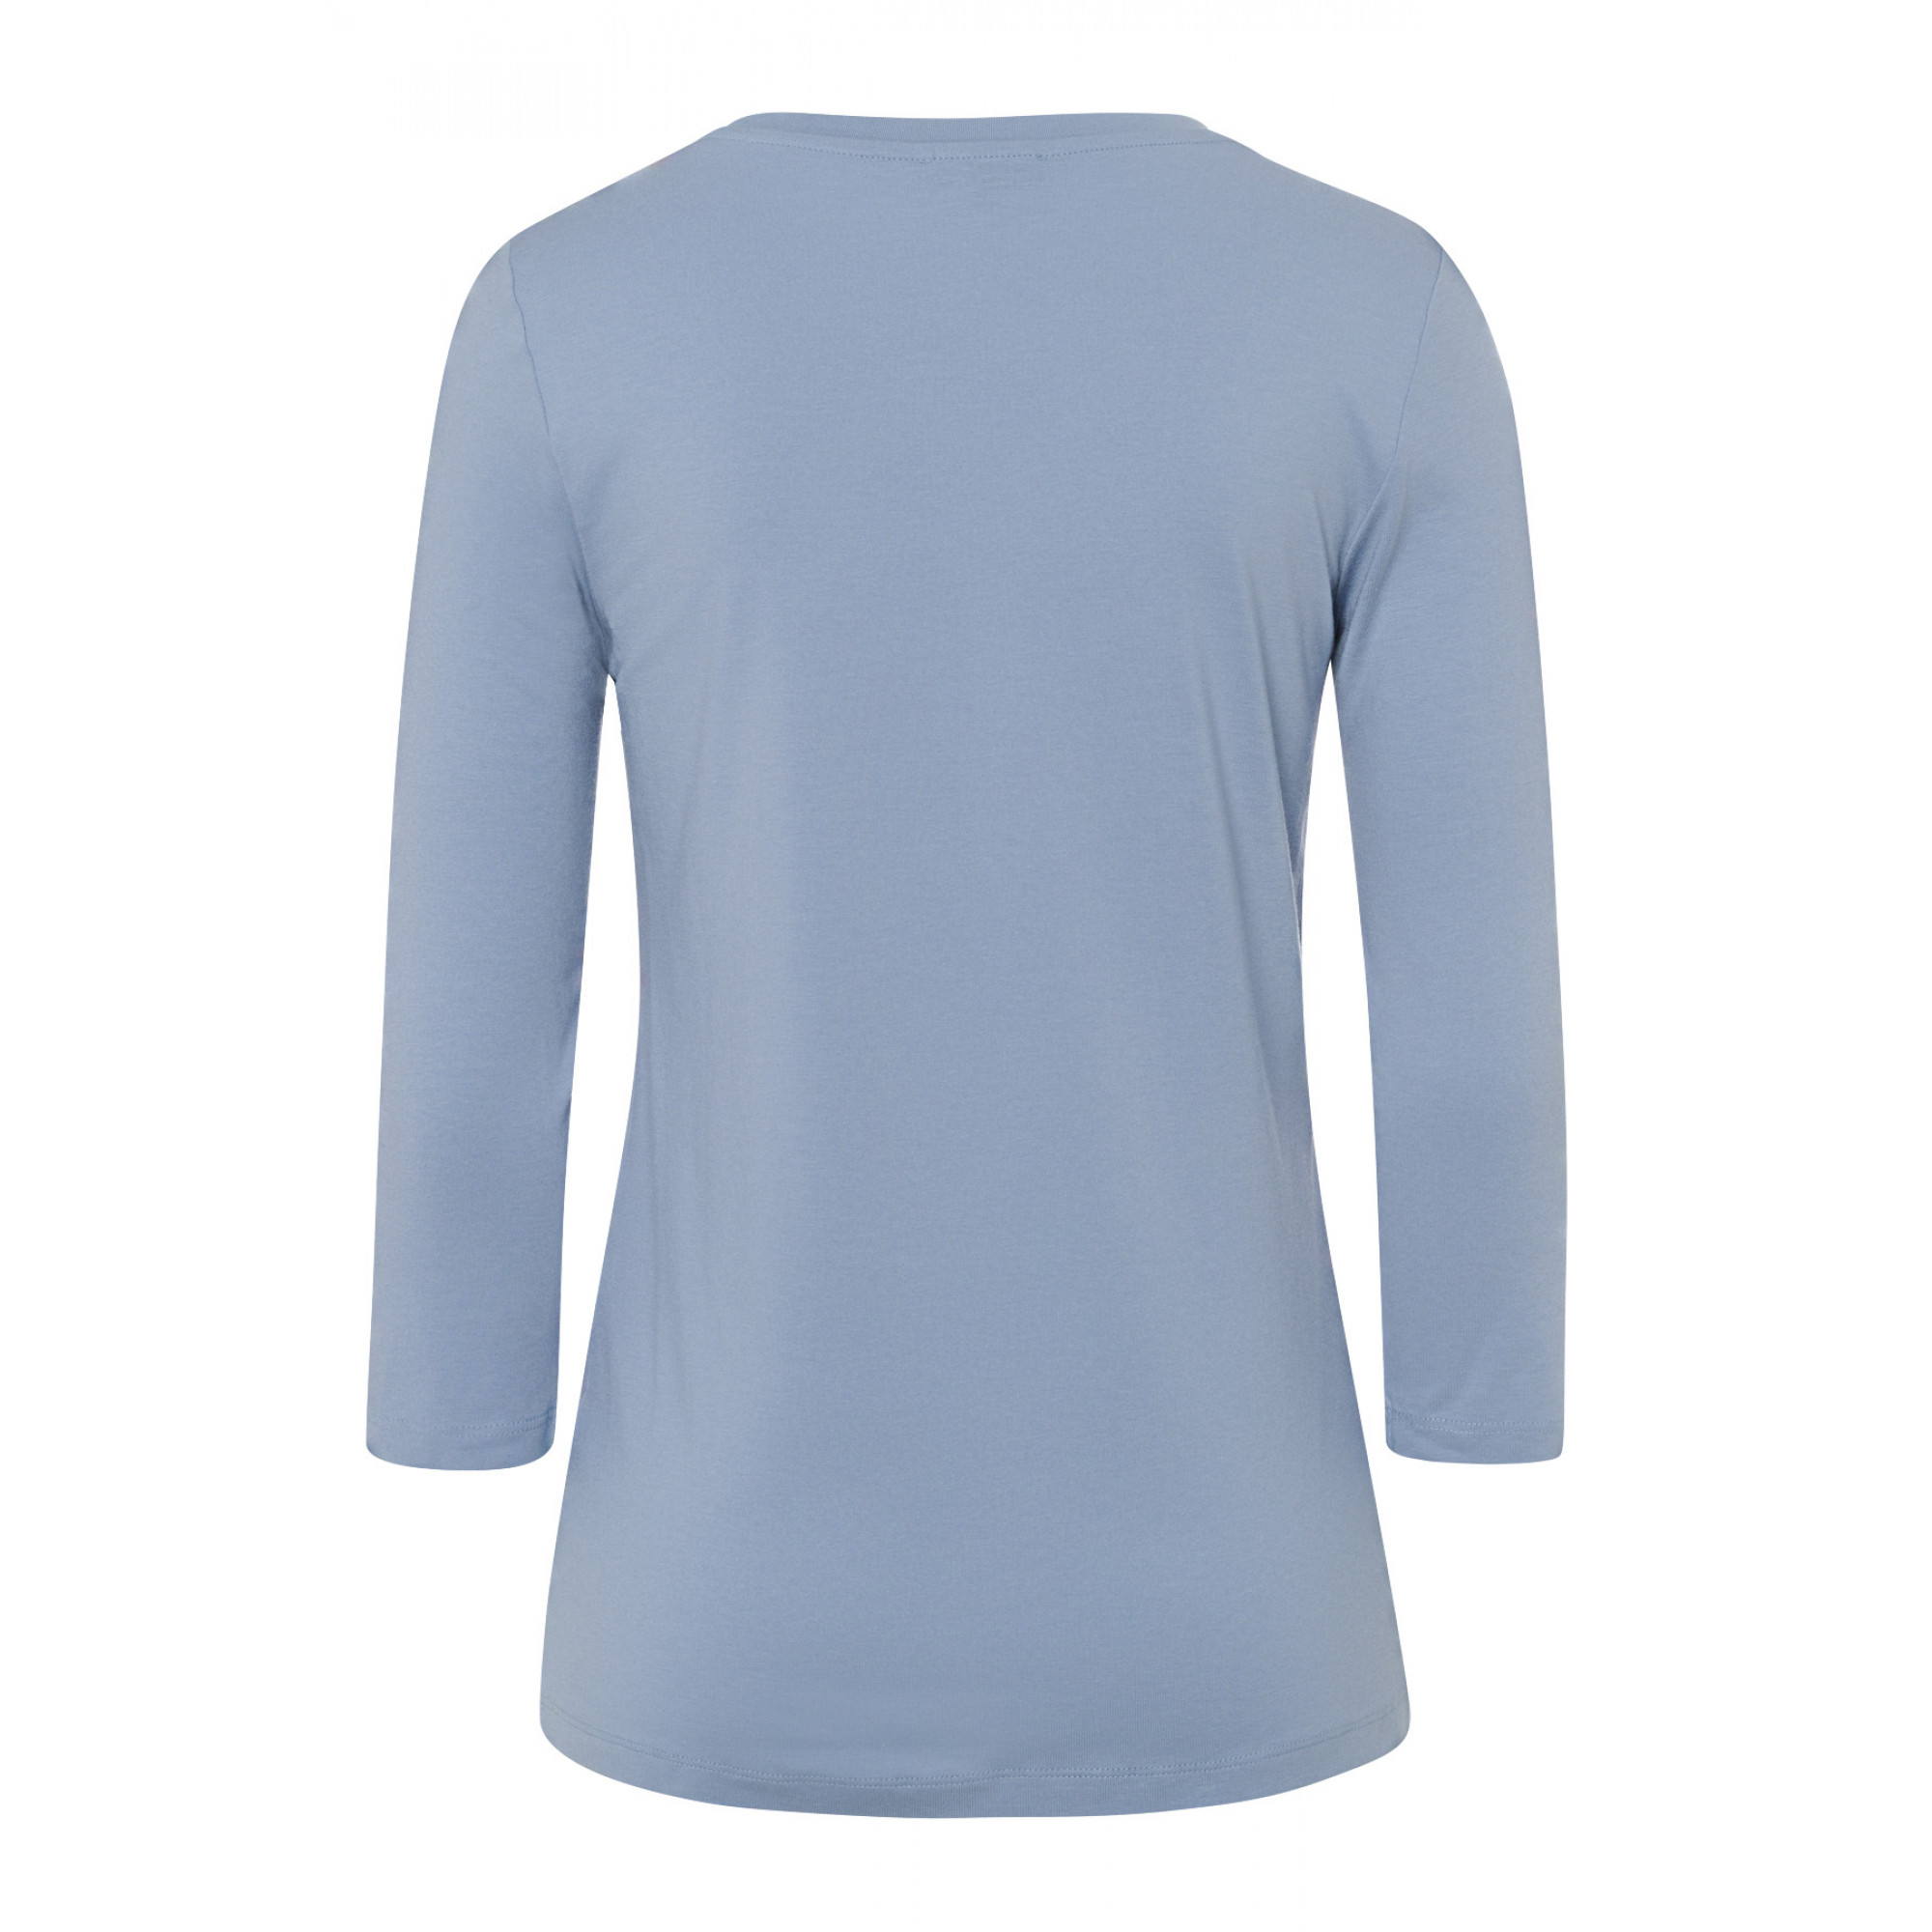 Wordingshirt, cloudy blue 01110005-0317 2